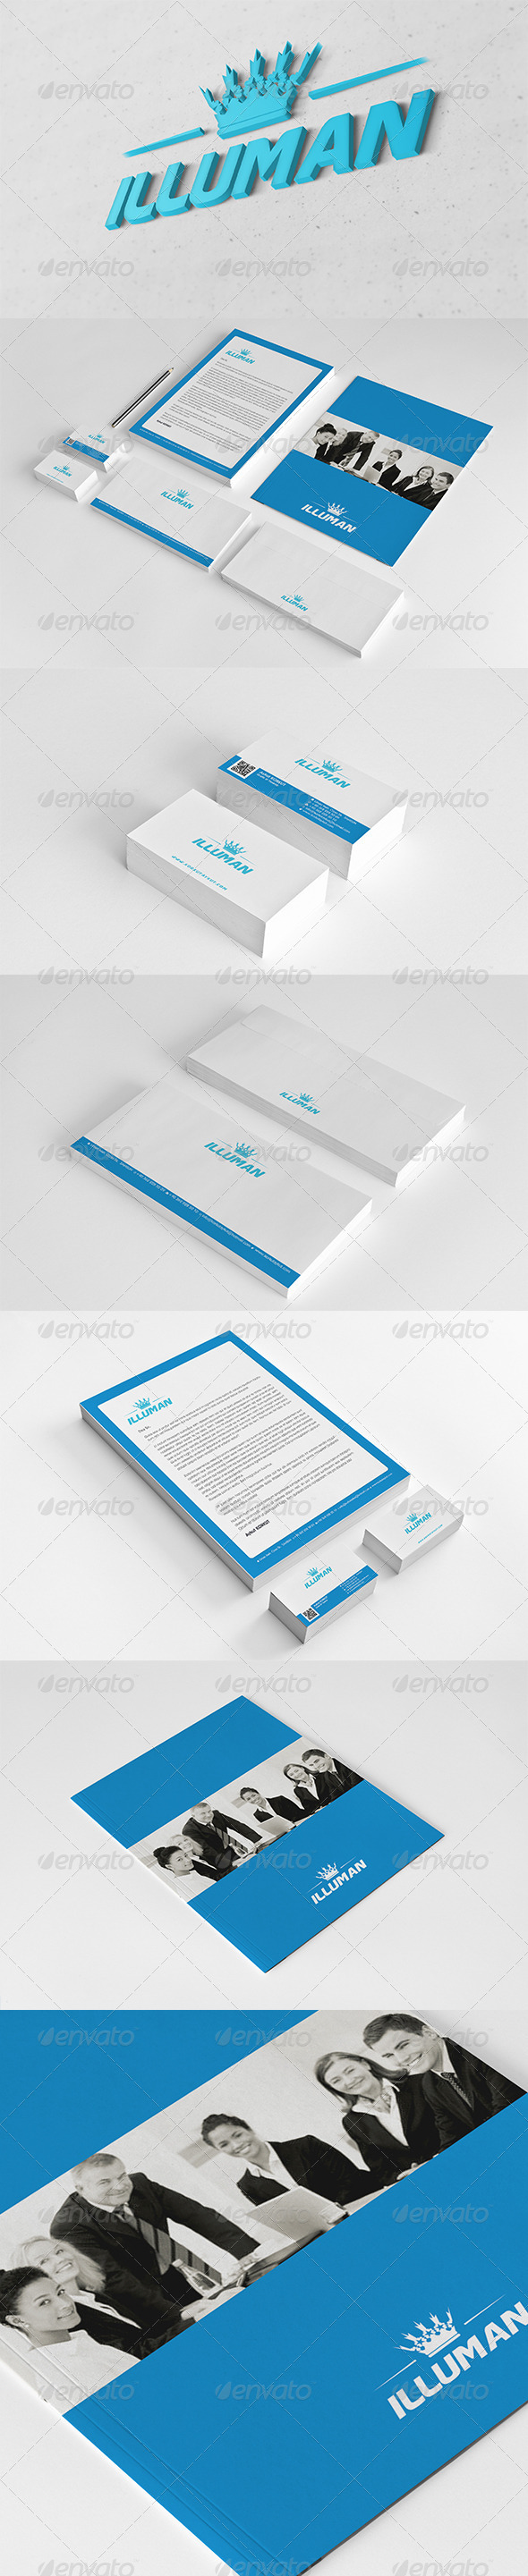 Illuman Corporate Identity Package  - Stationery Print Templates